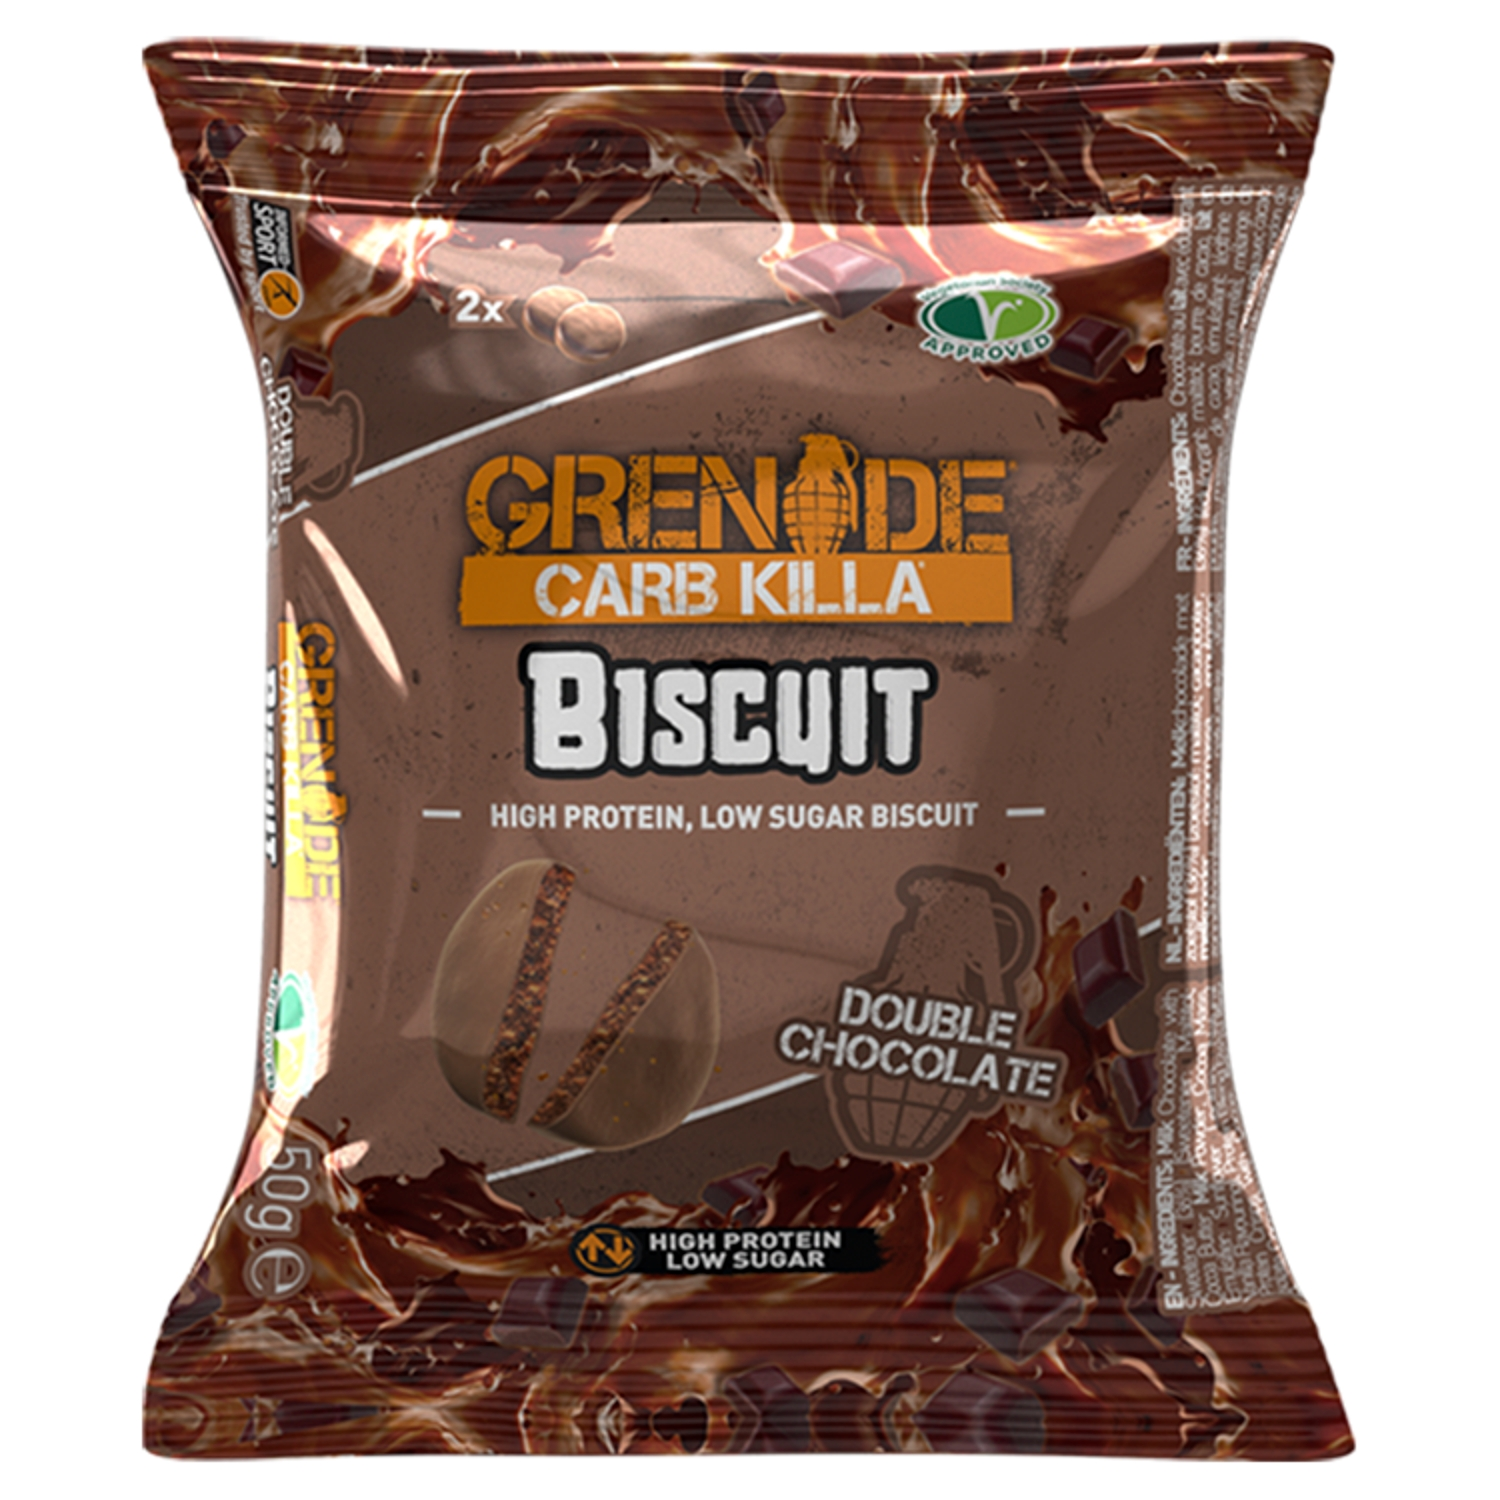 Grenade Carb Killa Biscuit Double Chocolate 50g